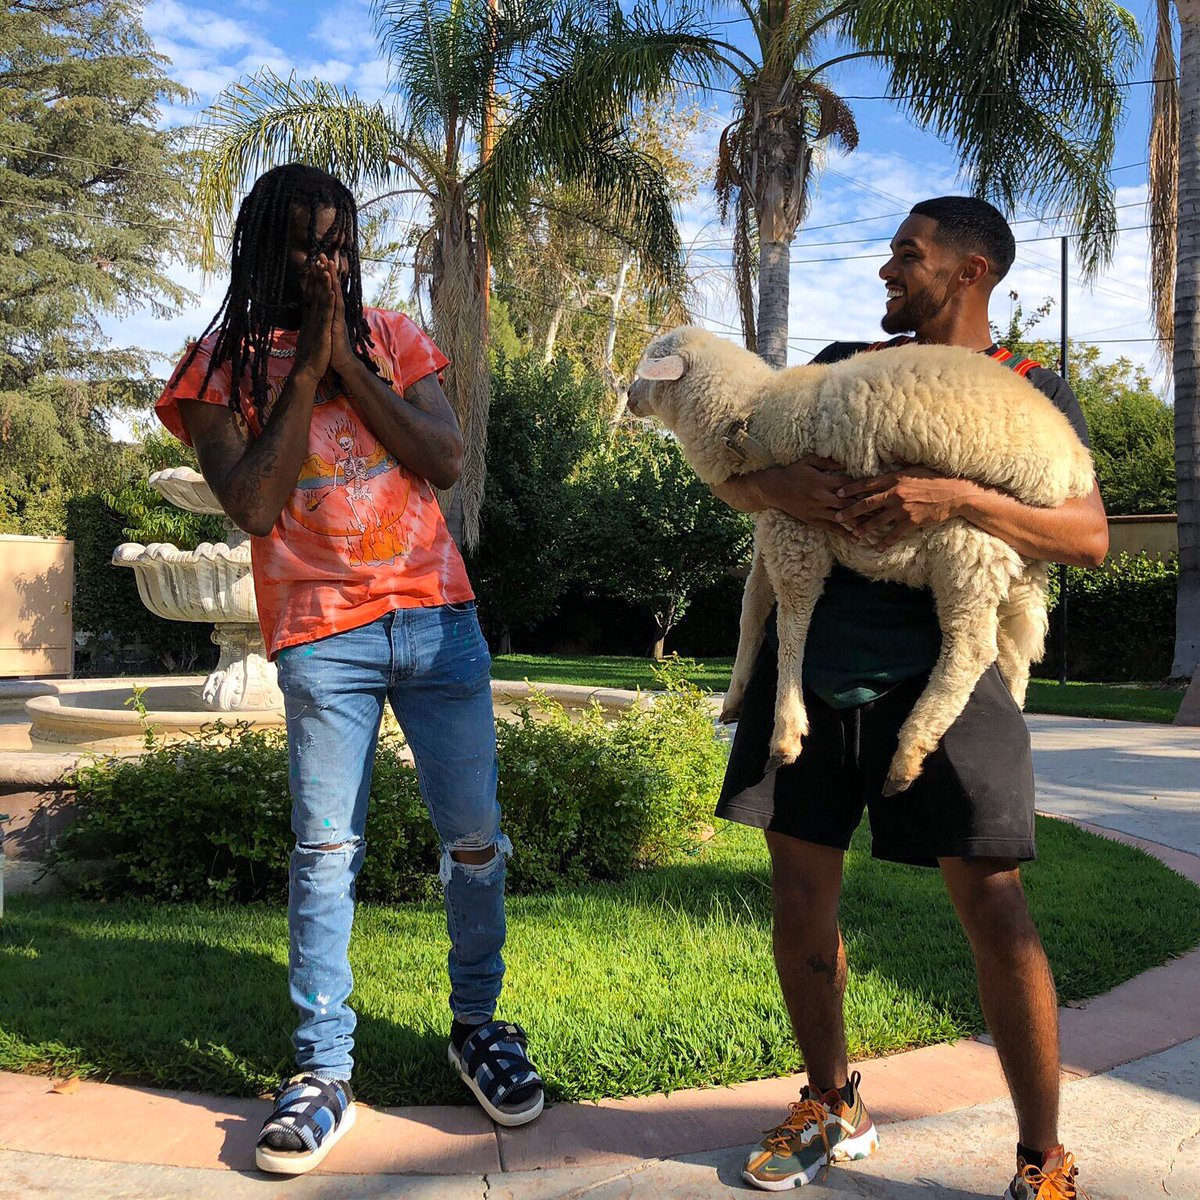 Chief keef hit me up talkin bout let's race our lambs bro, so I pulled up with my lamb not knowing he meant Lamborghini 😔